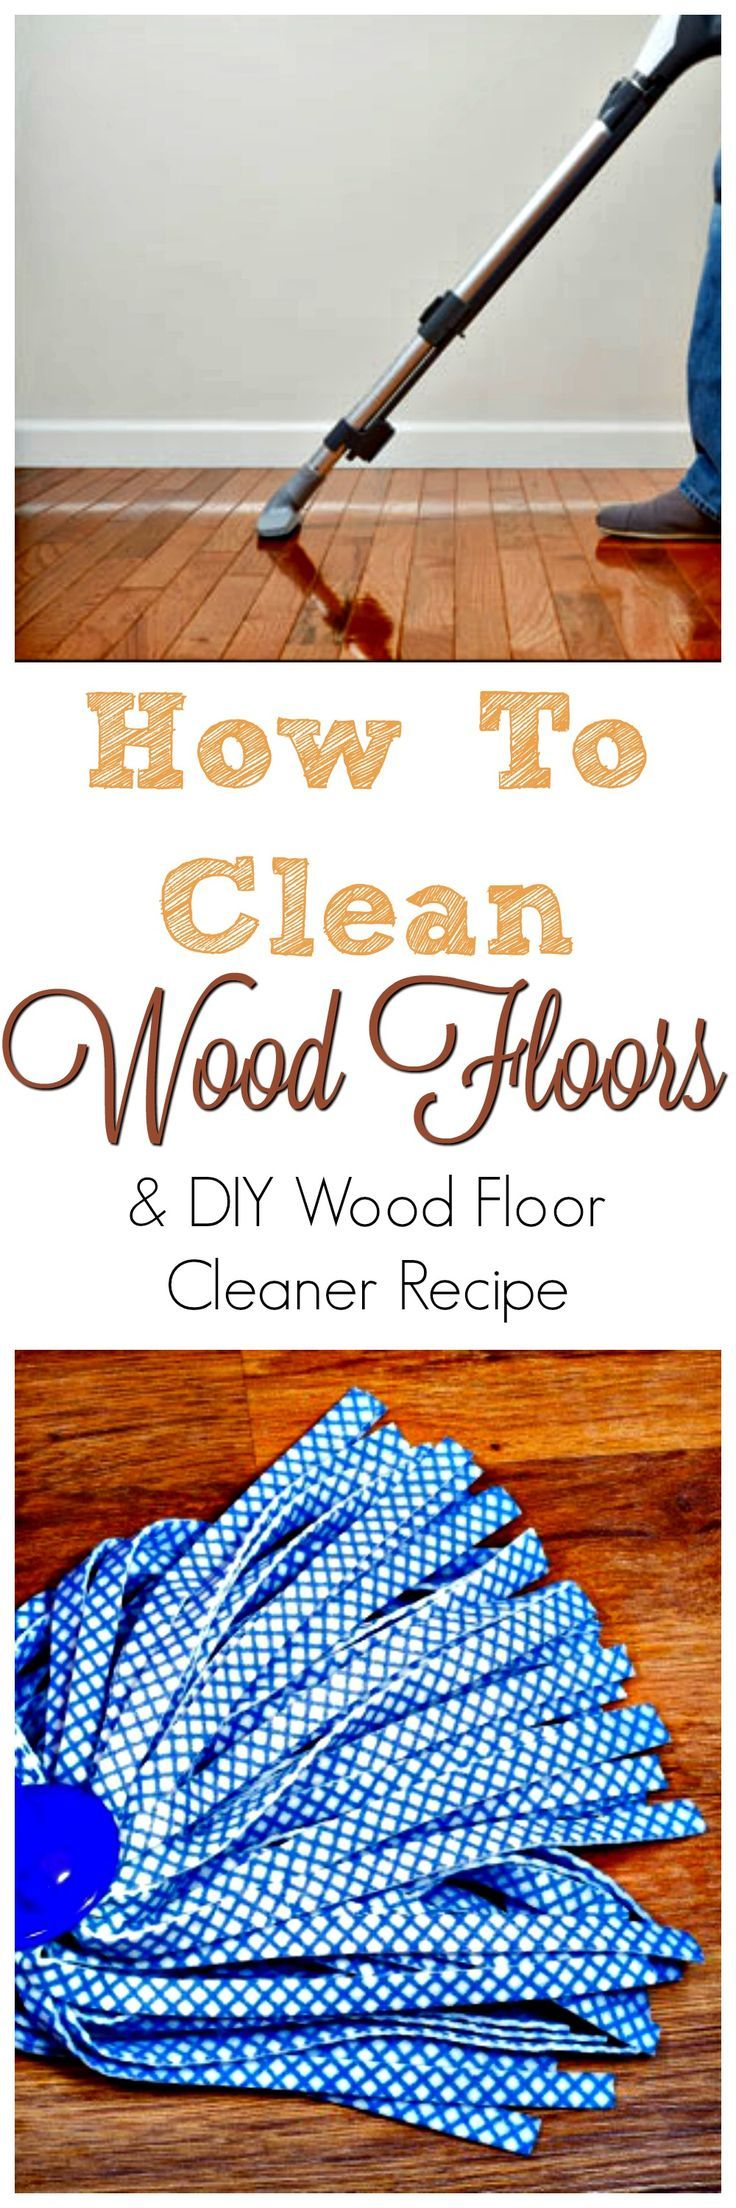 25+ unique Cleaning wood ideas on Pinterest | Clean wood, Cleaning ...